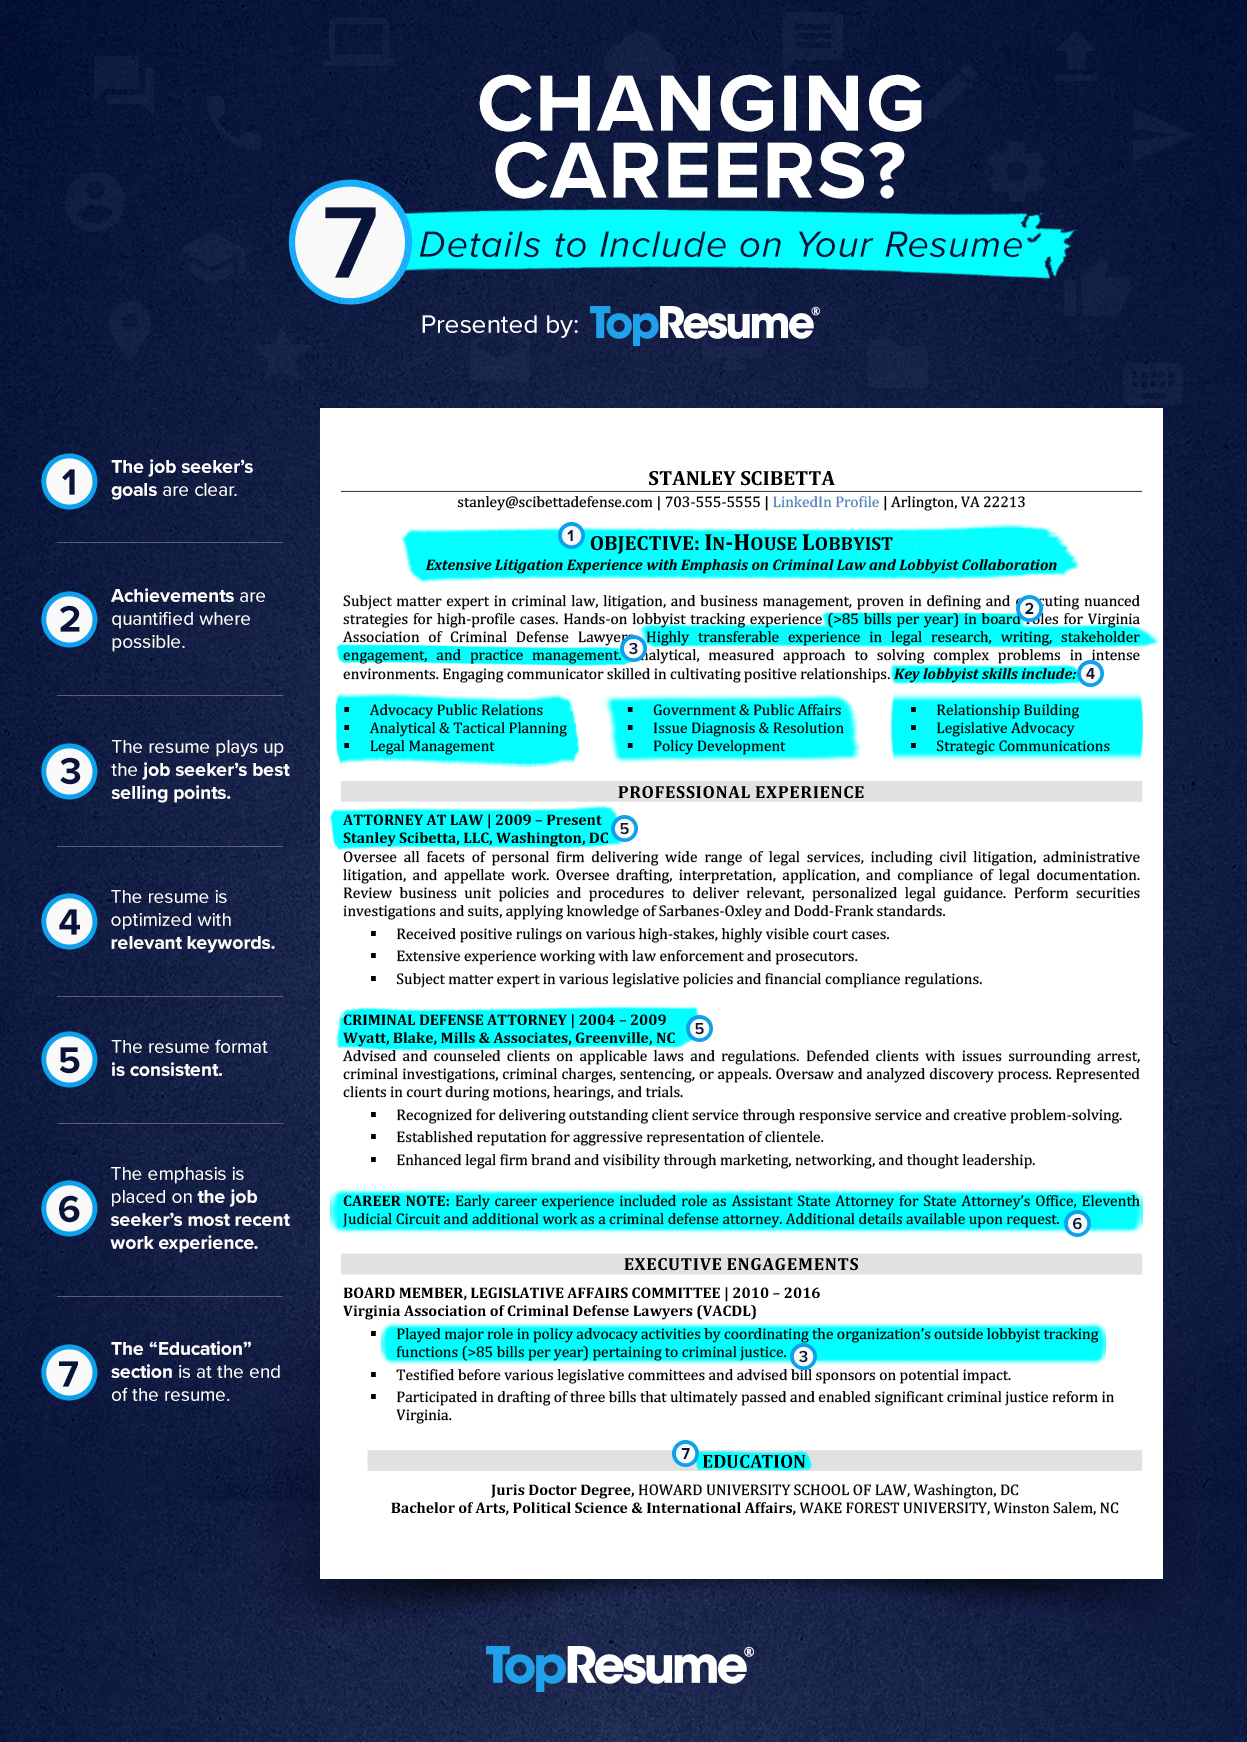 changing careers details to include on your resume topresume fit the job ig careerchange Resume Changing Resume To Fit The Job